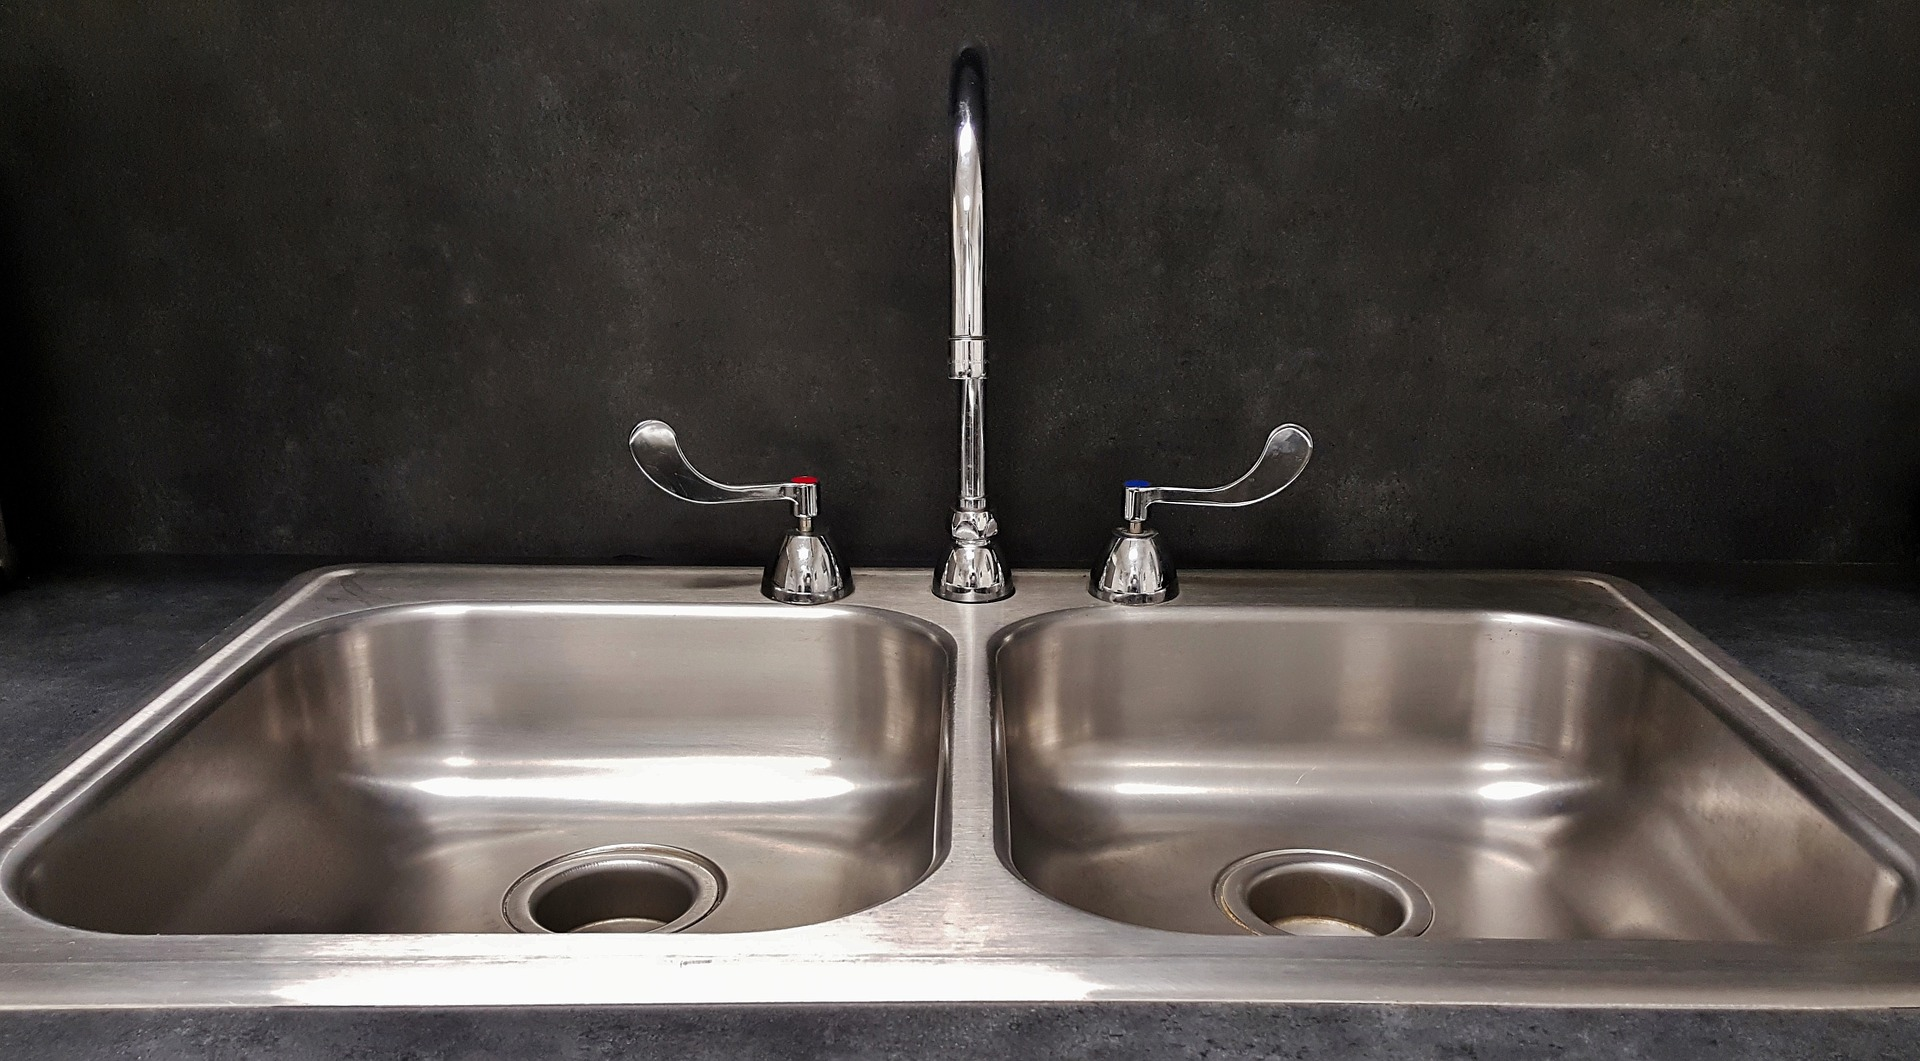 Sink Basin by Brett Hondow via Pixabay